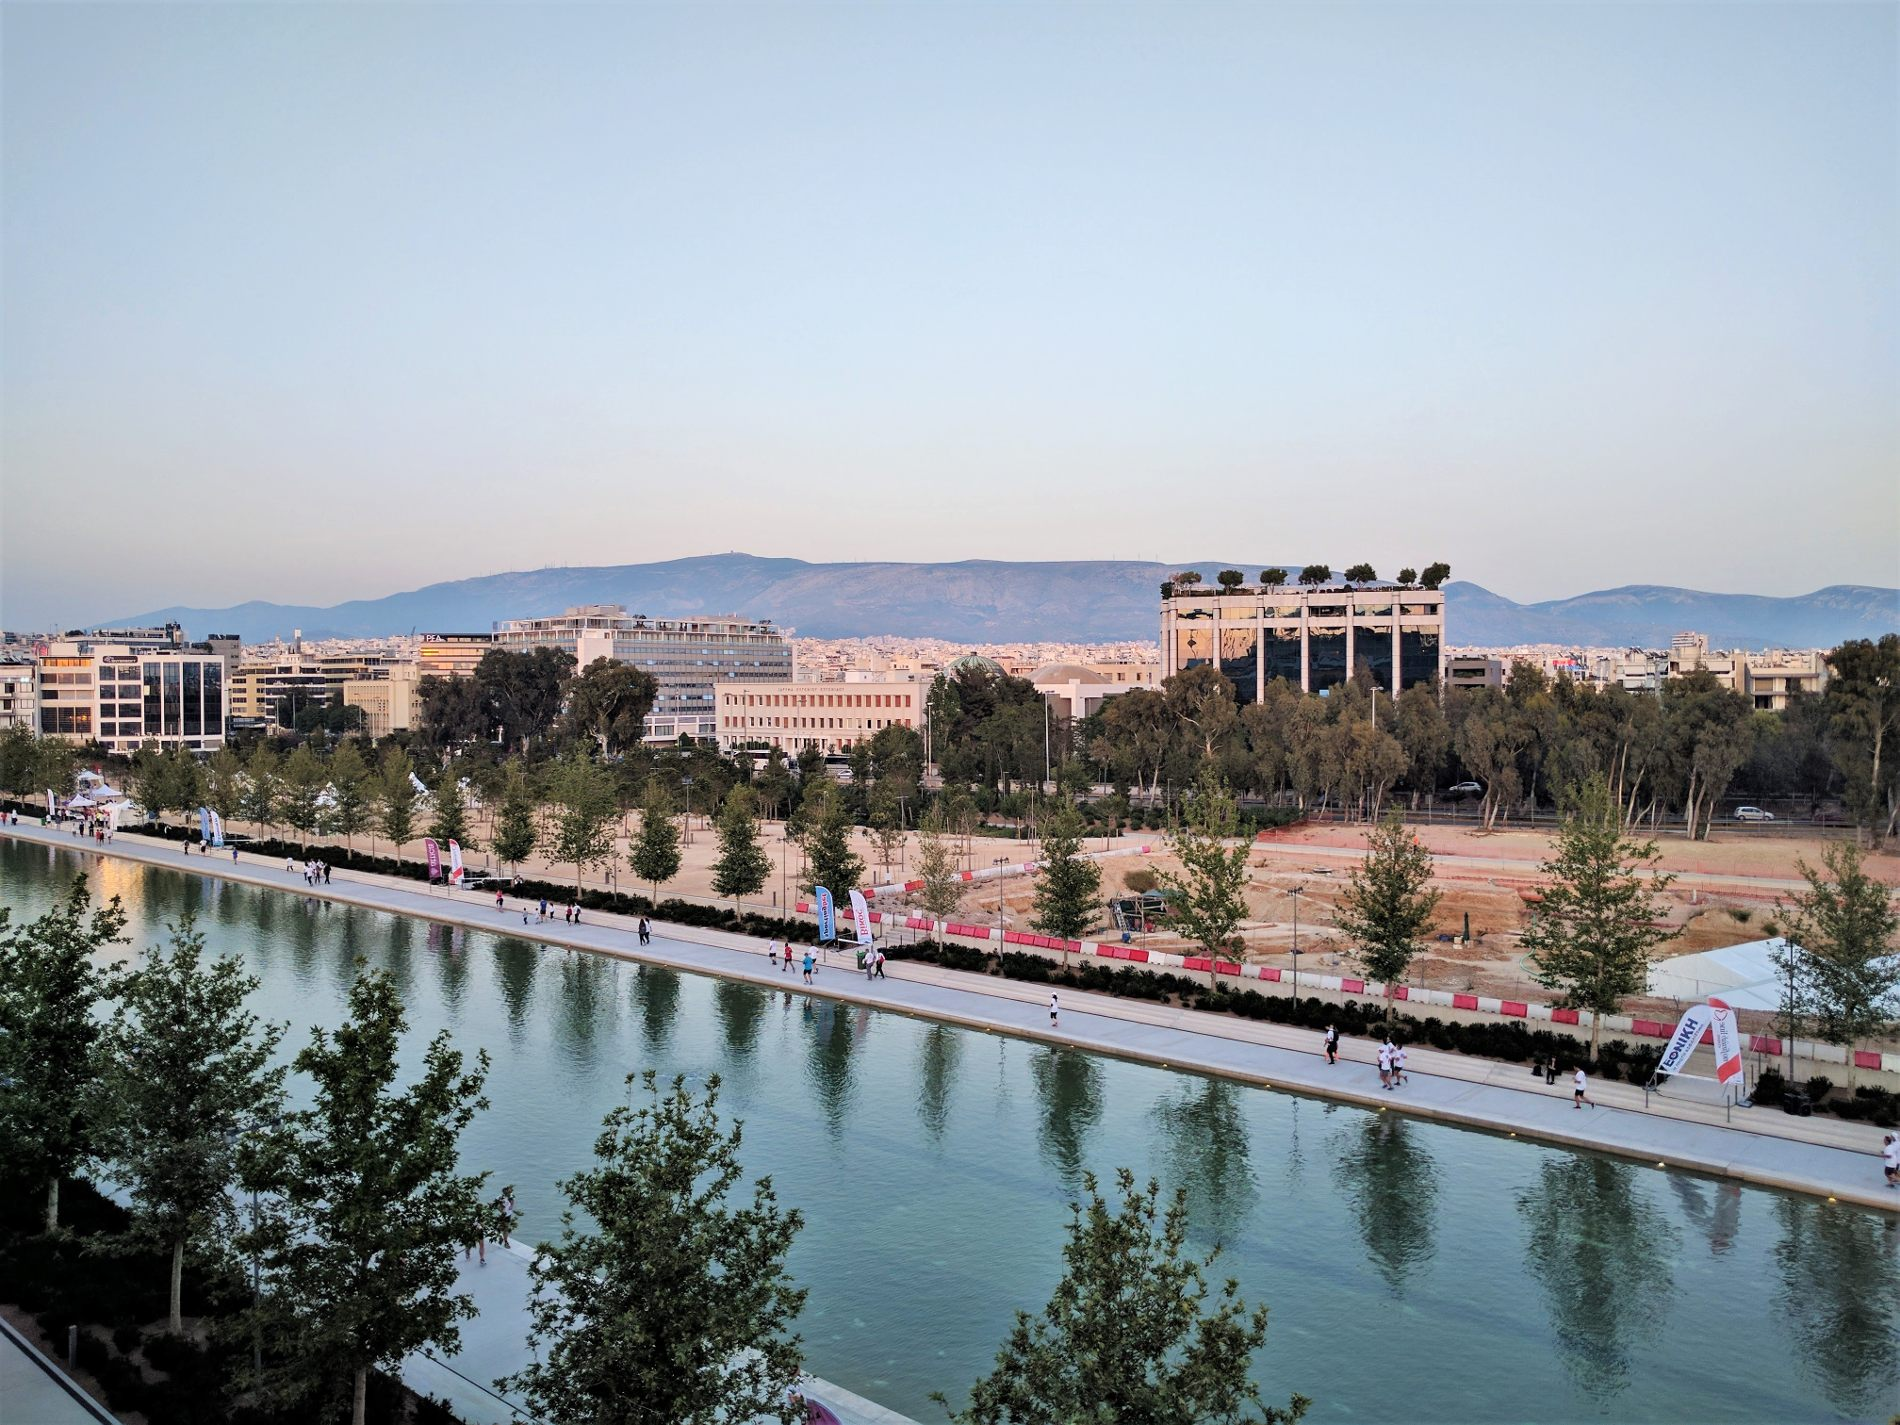 The Stavros Niarchos Foundation Cultural Center is one of the places where you can enjoy cycling in Athens without having to deal with traffic. Source: Truevoyagers